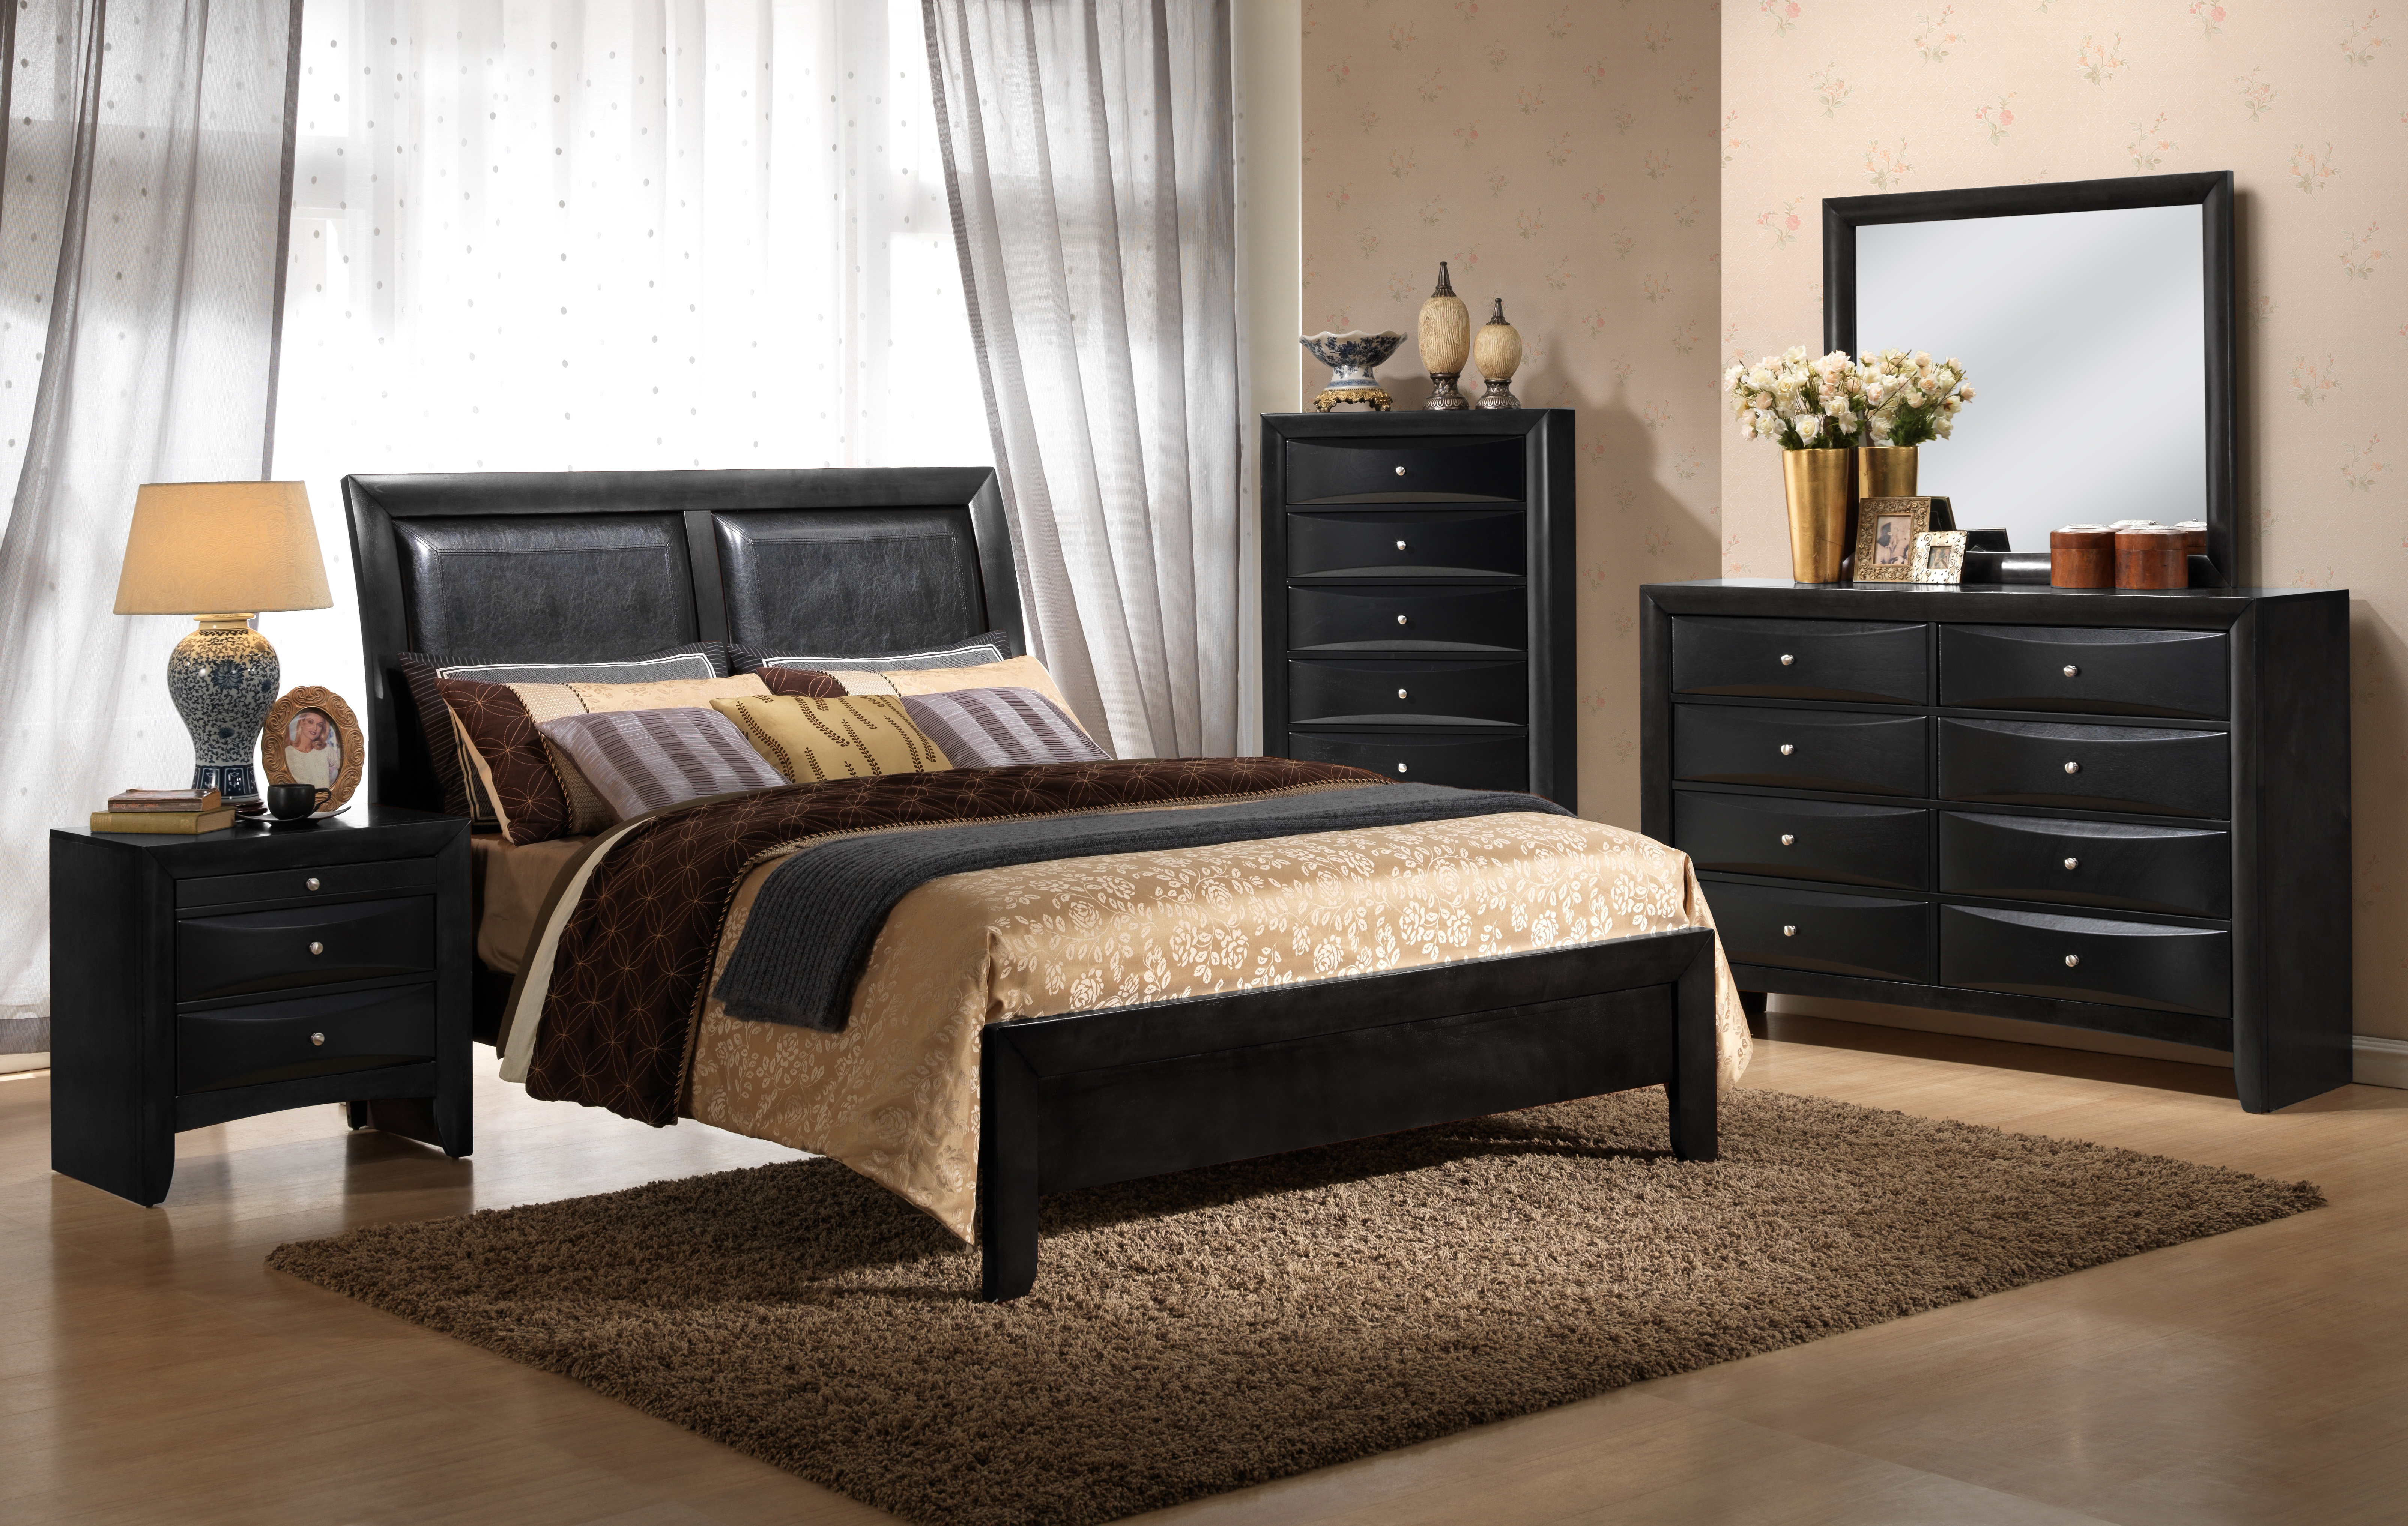 Innovative 5 Piece Bedroom Set Minimalist